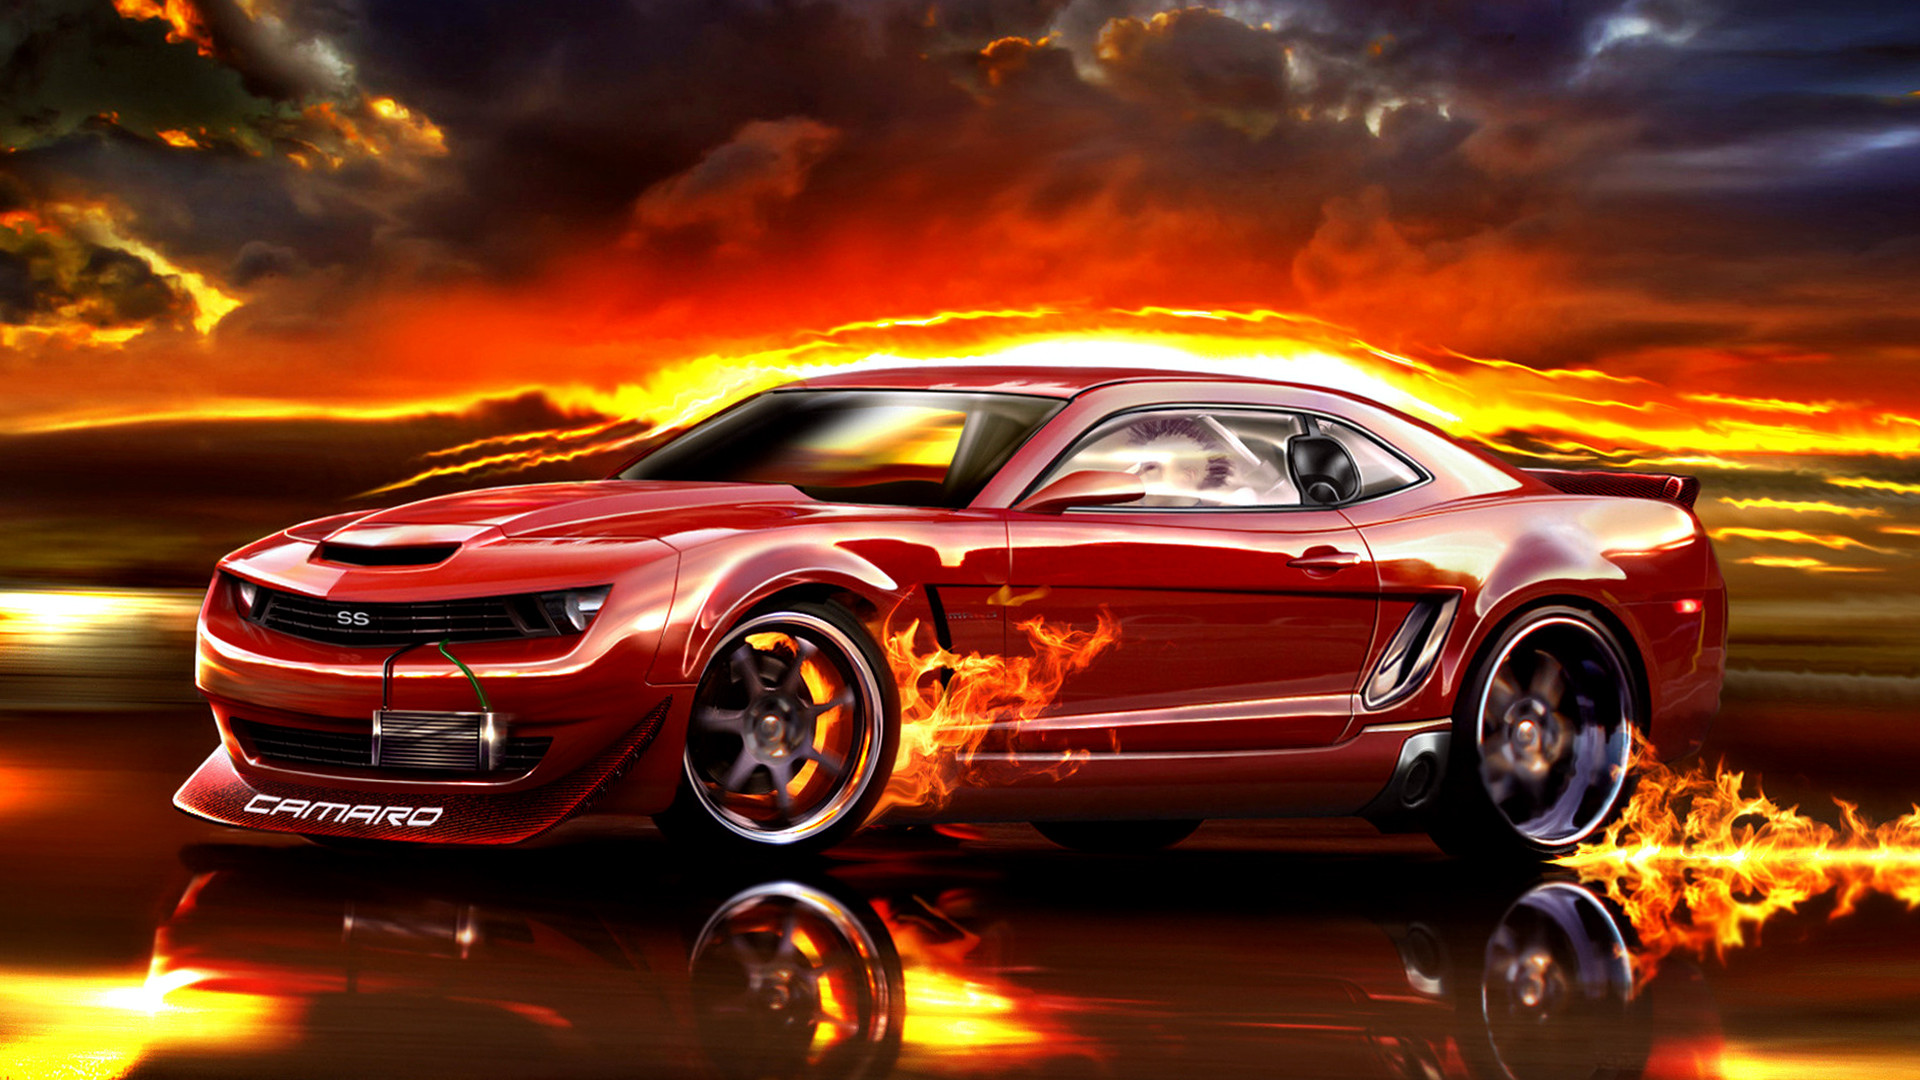 Red Chevrolet Camaro Fire Wallpapers HD / Desktop and Mobile Backgrounds